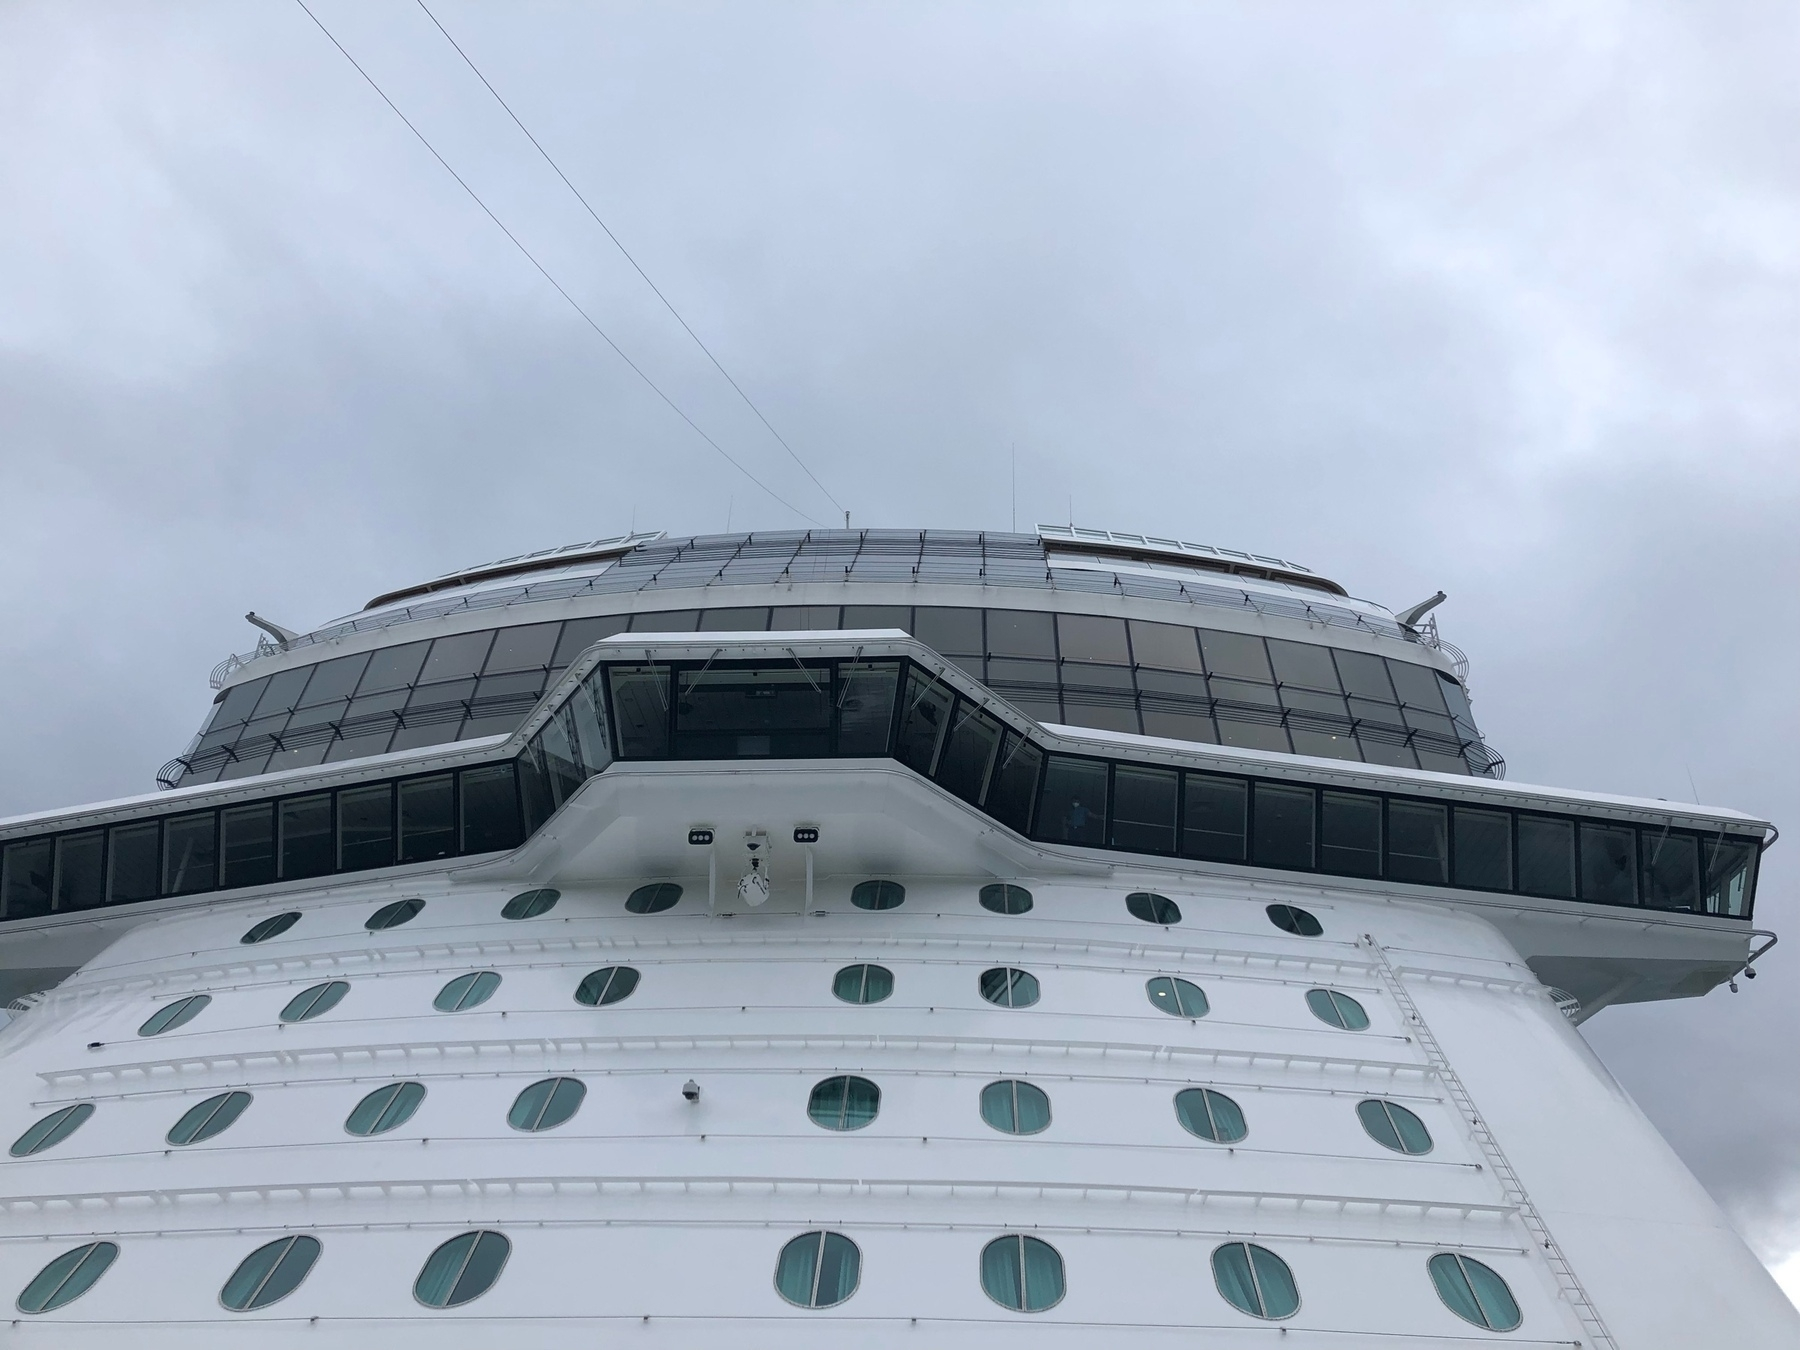 A long strip of windows up high on the front of a cruise ship. Below, the hull is white with curtained windows.